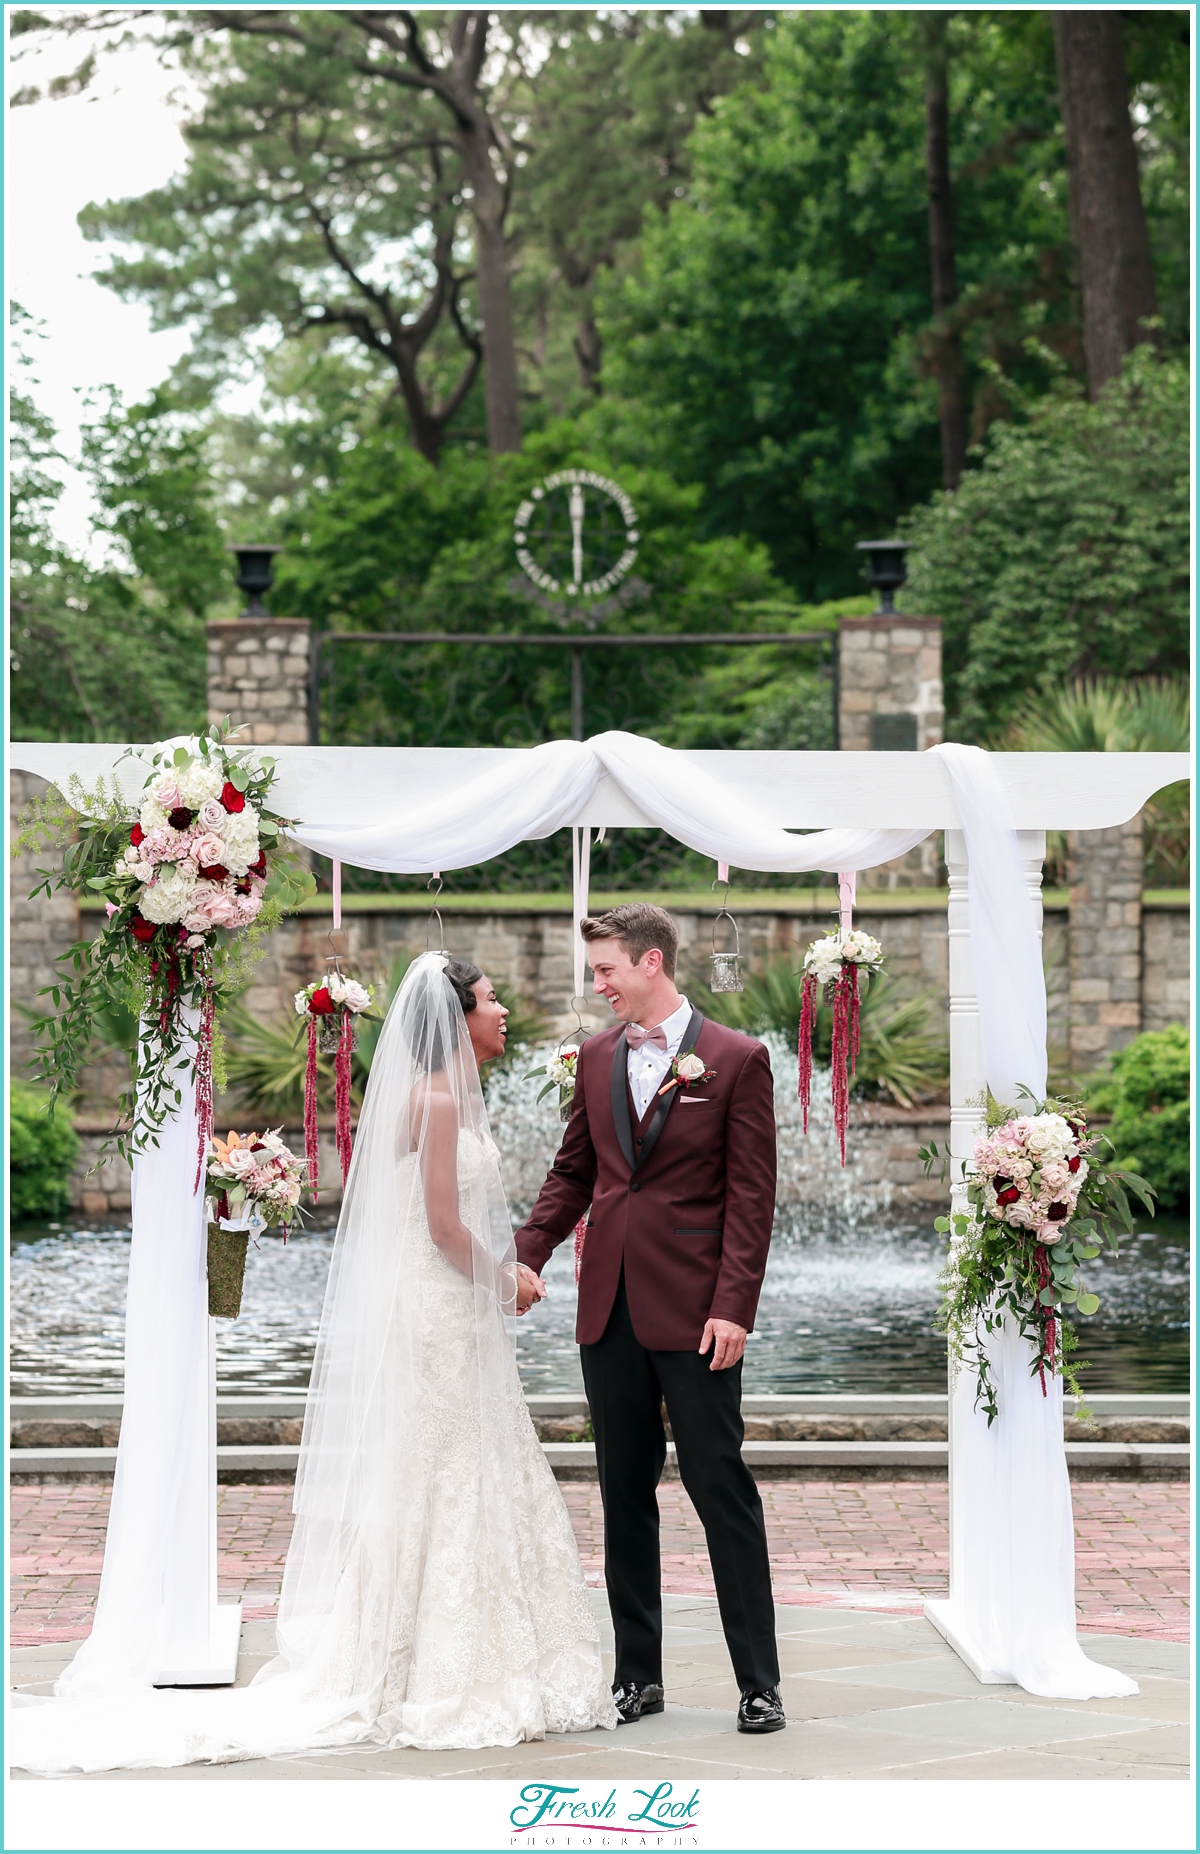 joyful bride and groom portraits